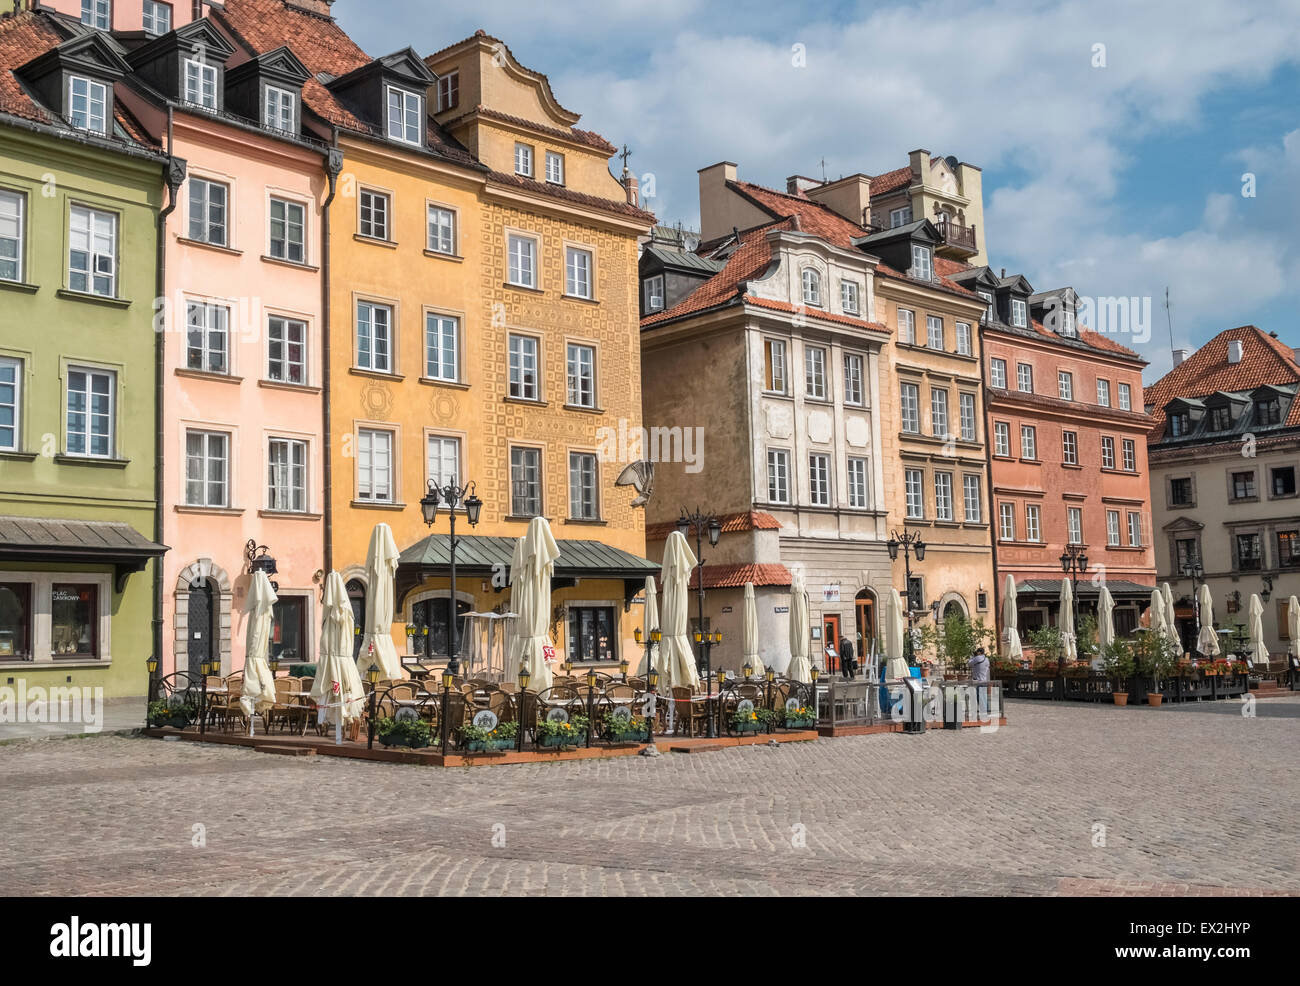 Example of colourful architecture found in Old Town, Warsaw, a UNESCO World Heritage Site,  Poland - Stock Image